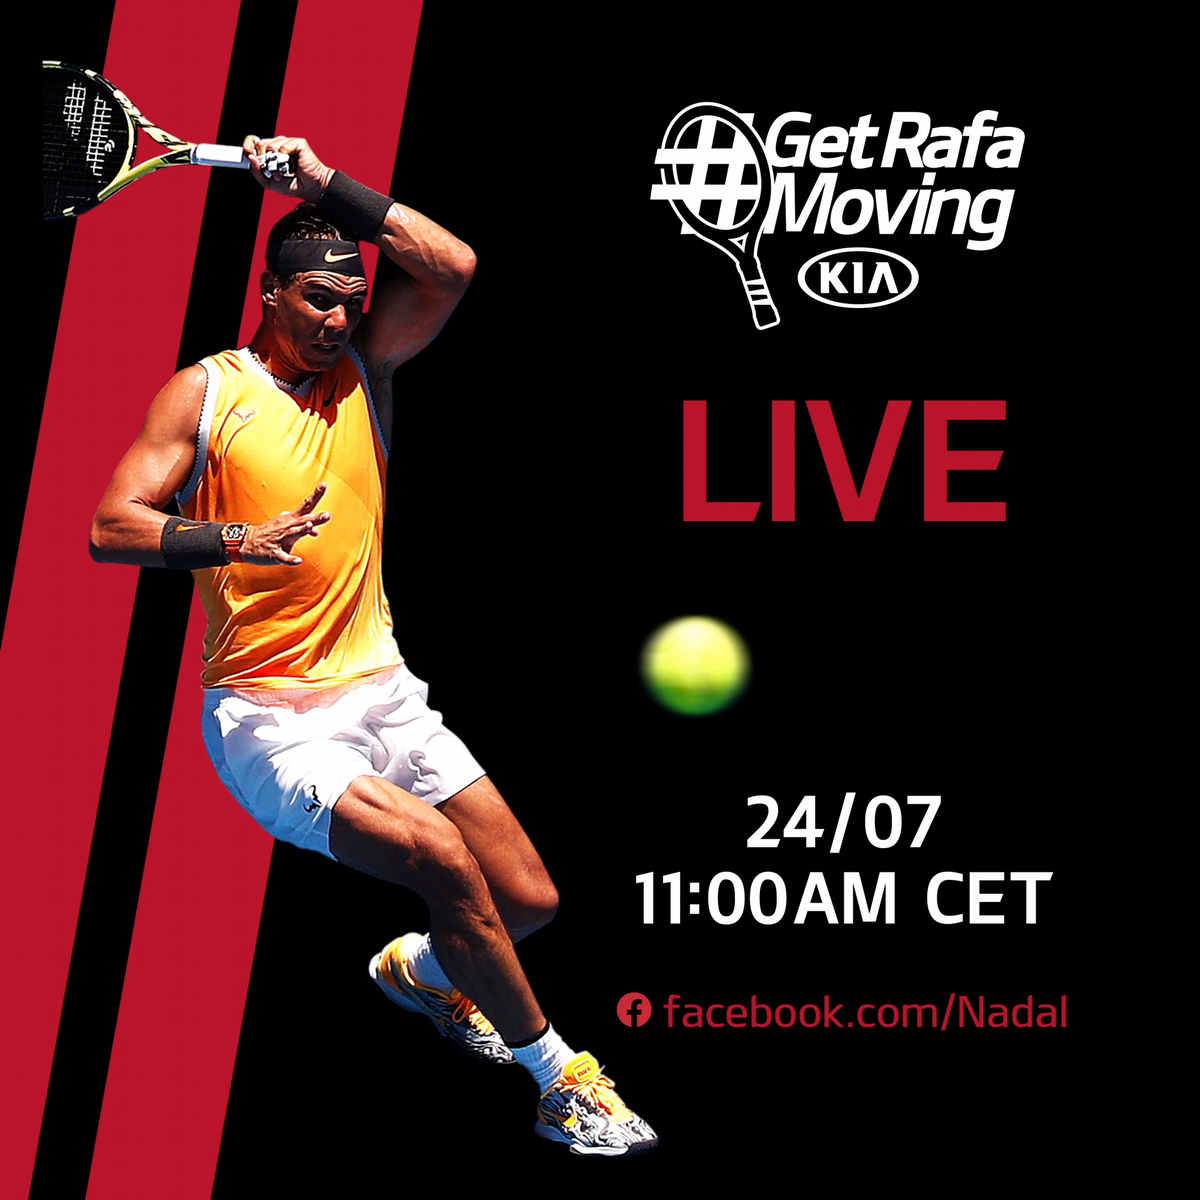 Jump over to Rafa's facebook page (https://t.co/mv4MR11iFb) for virtual courtside seats and start calling the shots as well.   We'll be LIVE with @RafaelNadal from 11:00 CET #Kia #KiaTennis #Nadal #GetRafaMoving https://t.co/bM6LwOPY5x